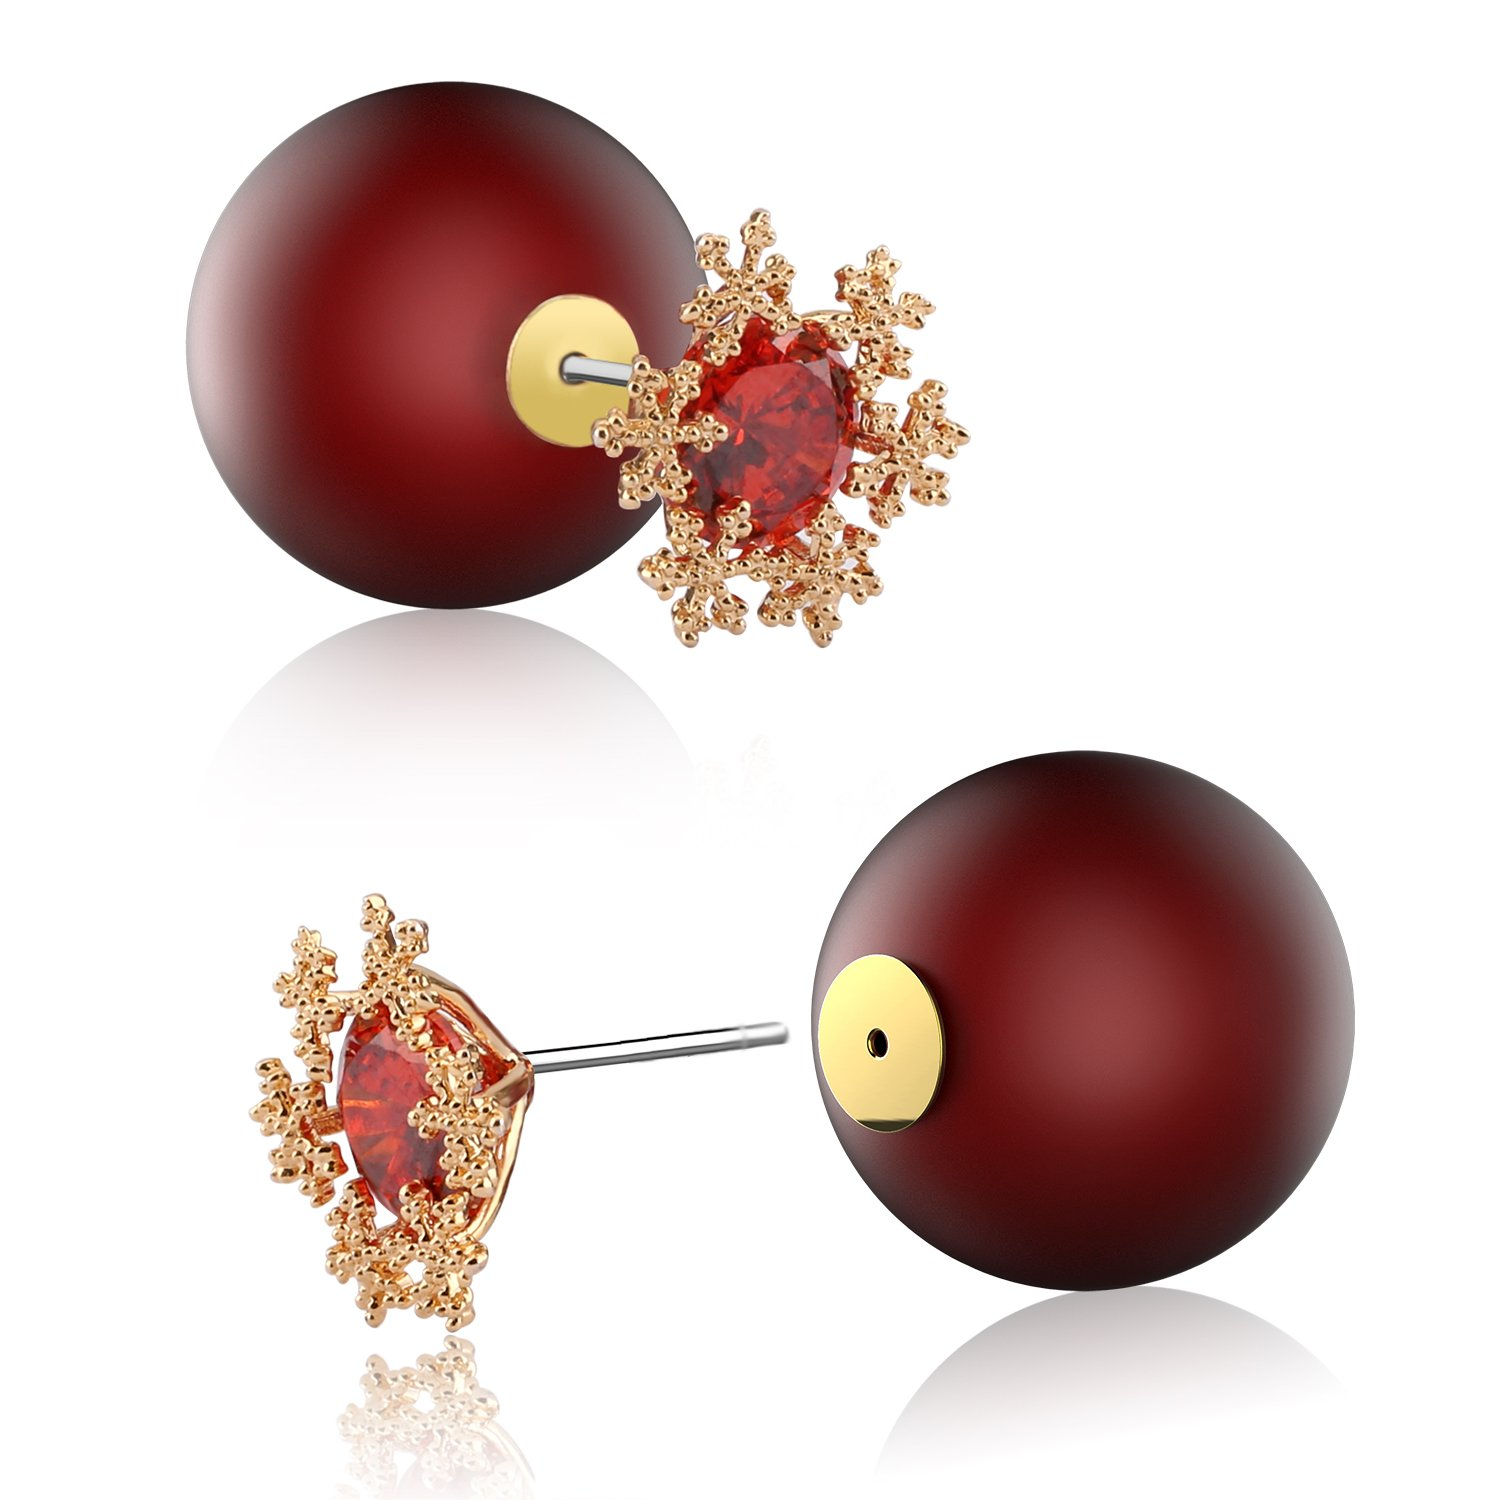 UHIBROS 316L Surgical Stainless Steel Stud Earrings Cubic Zirconia Red Ball Back Earring